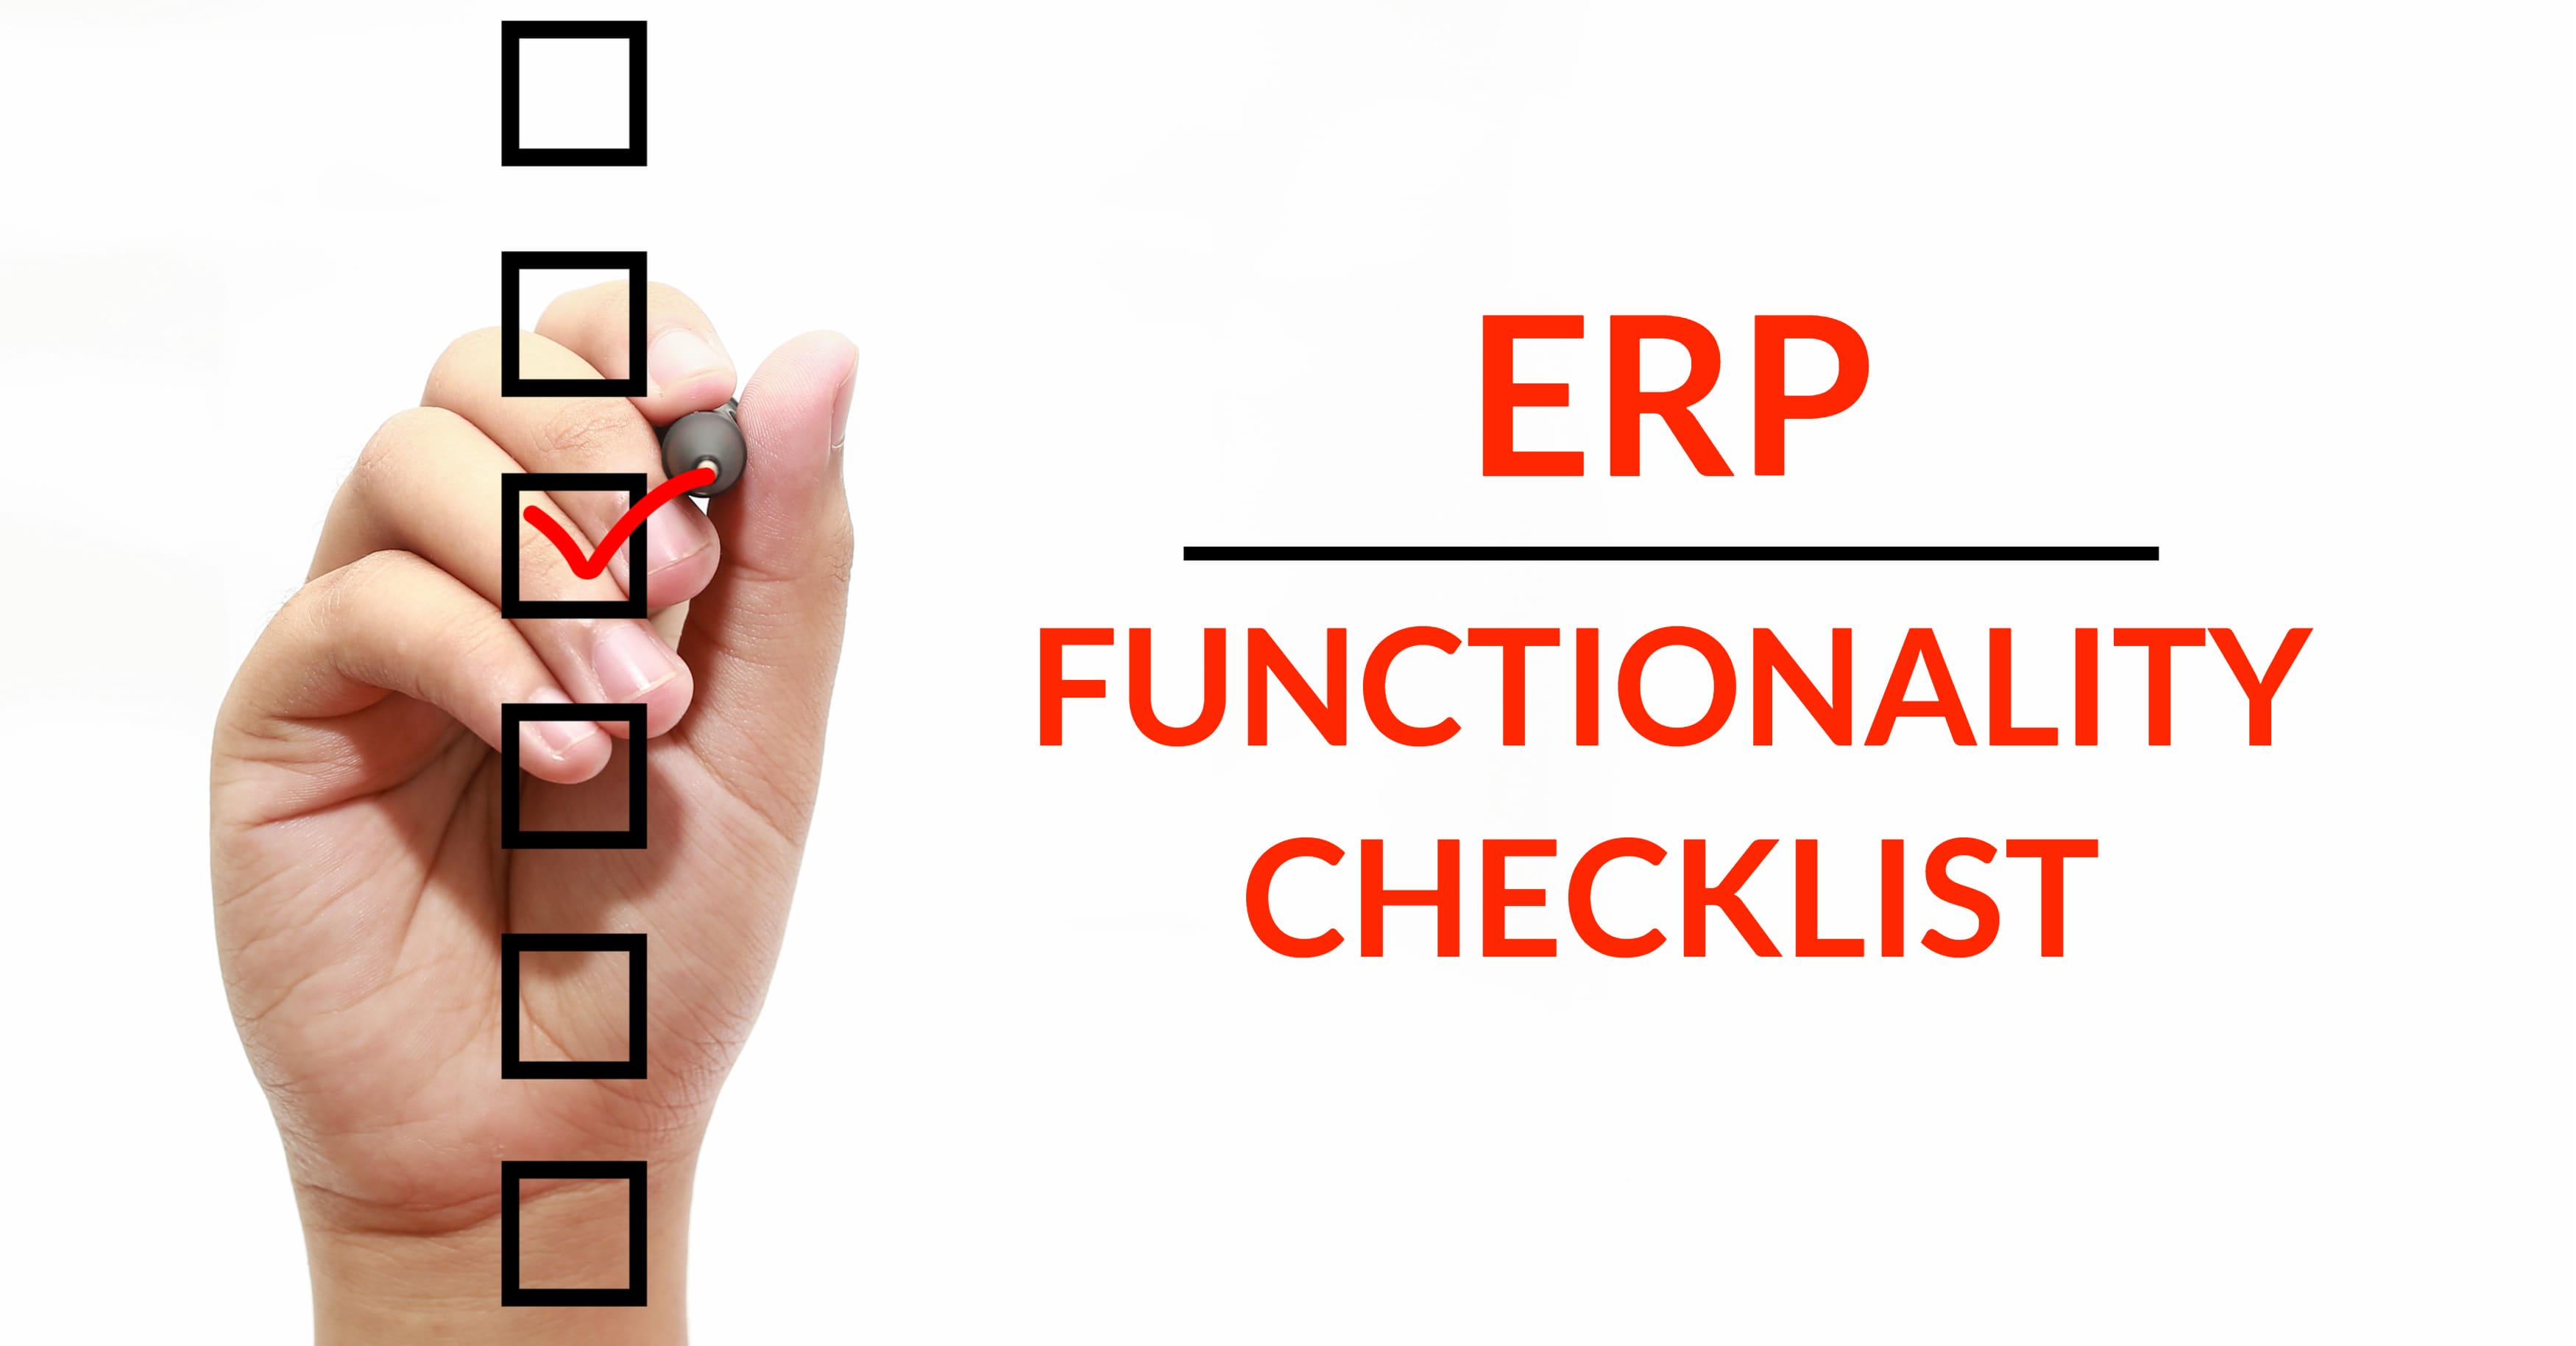 ERP Functionality Checklist